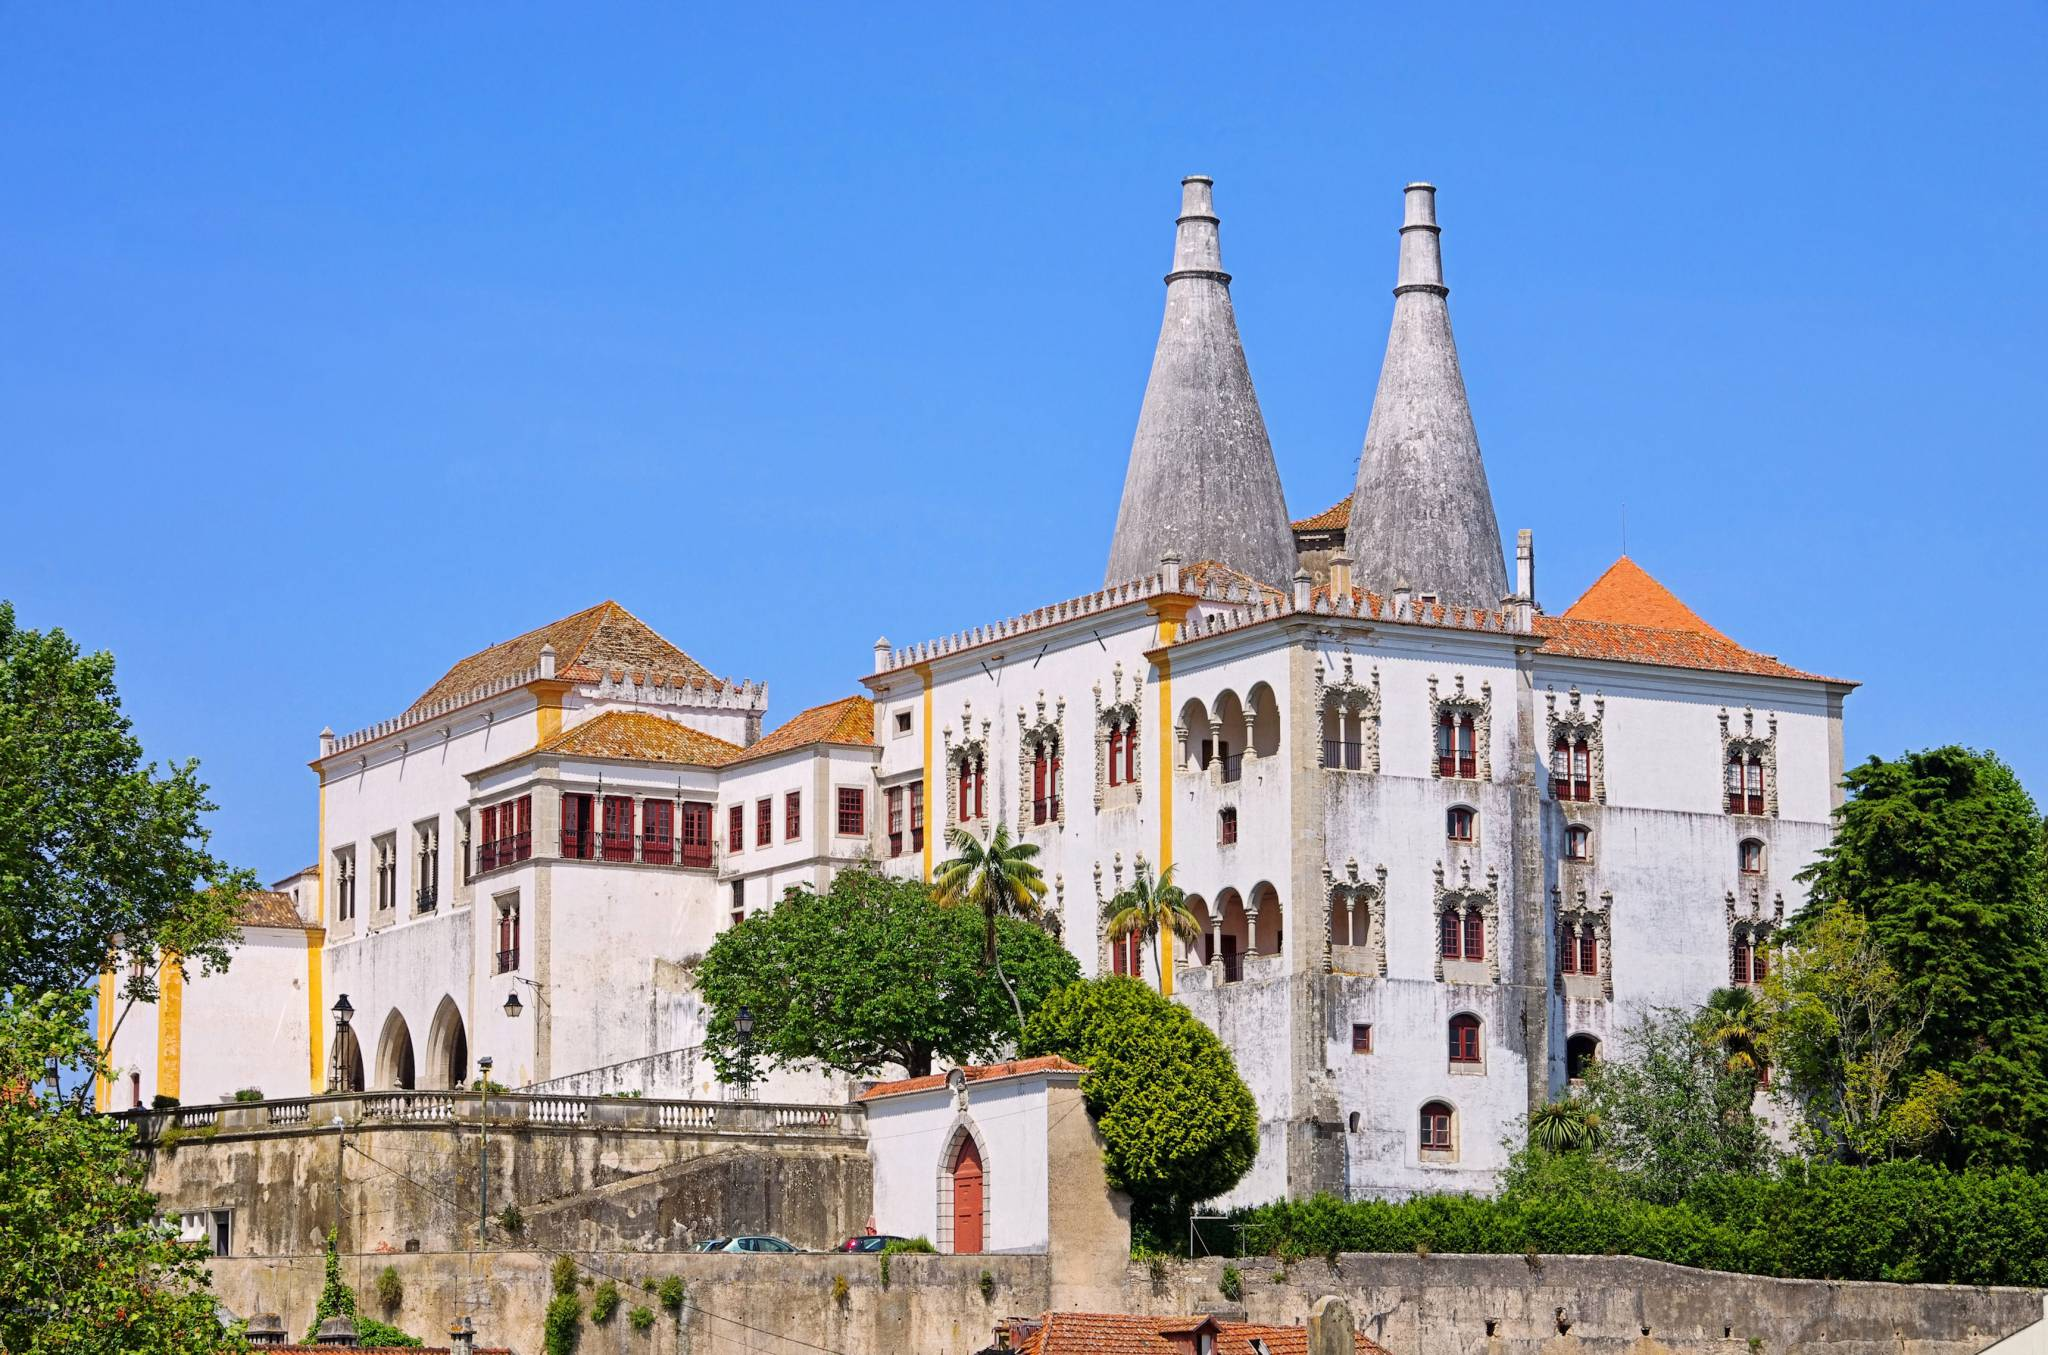 Travel to Sintra with eTips Travel Guide